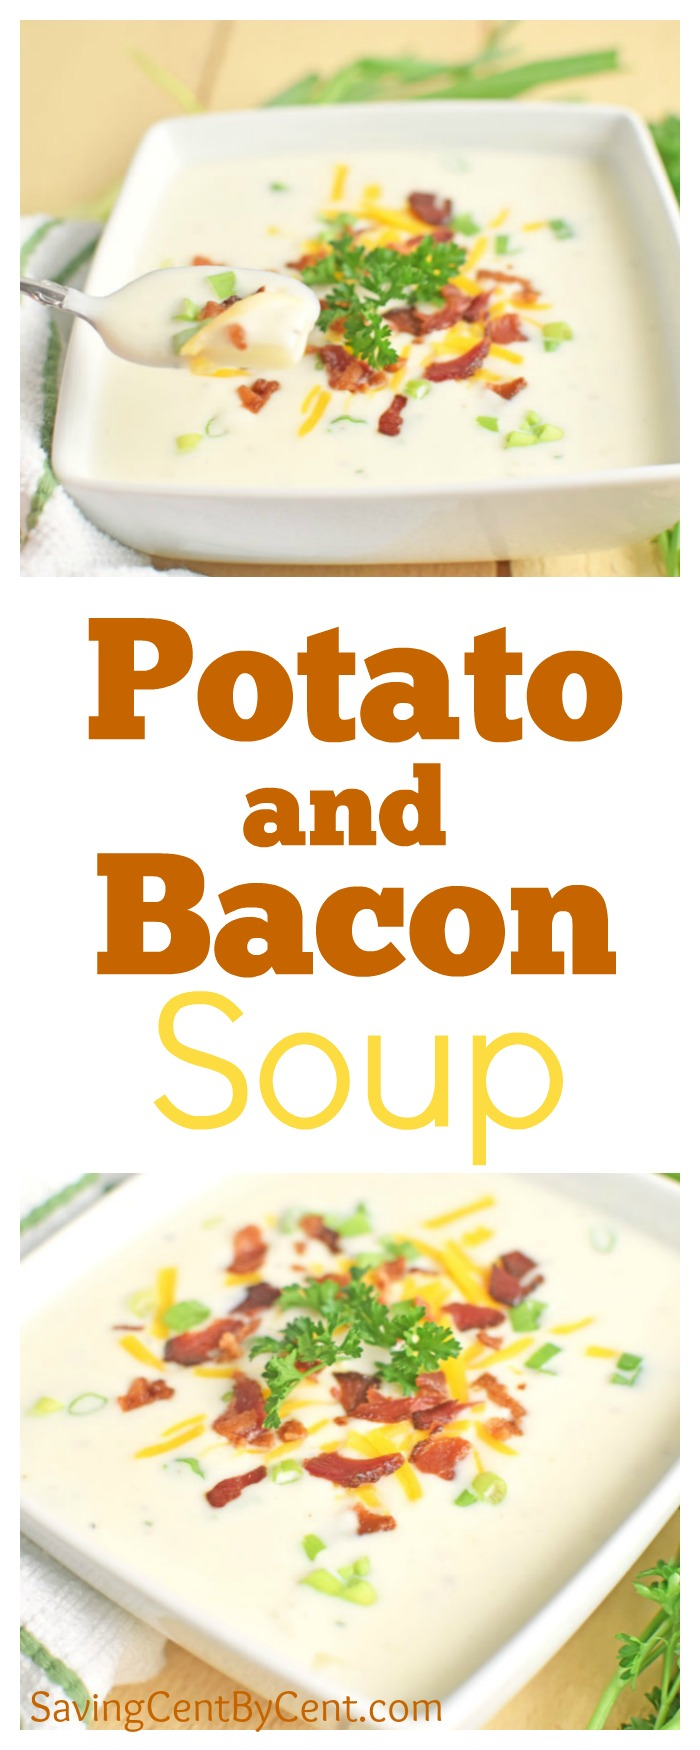 Potato and Bacon Soup